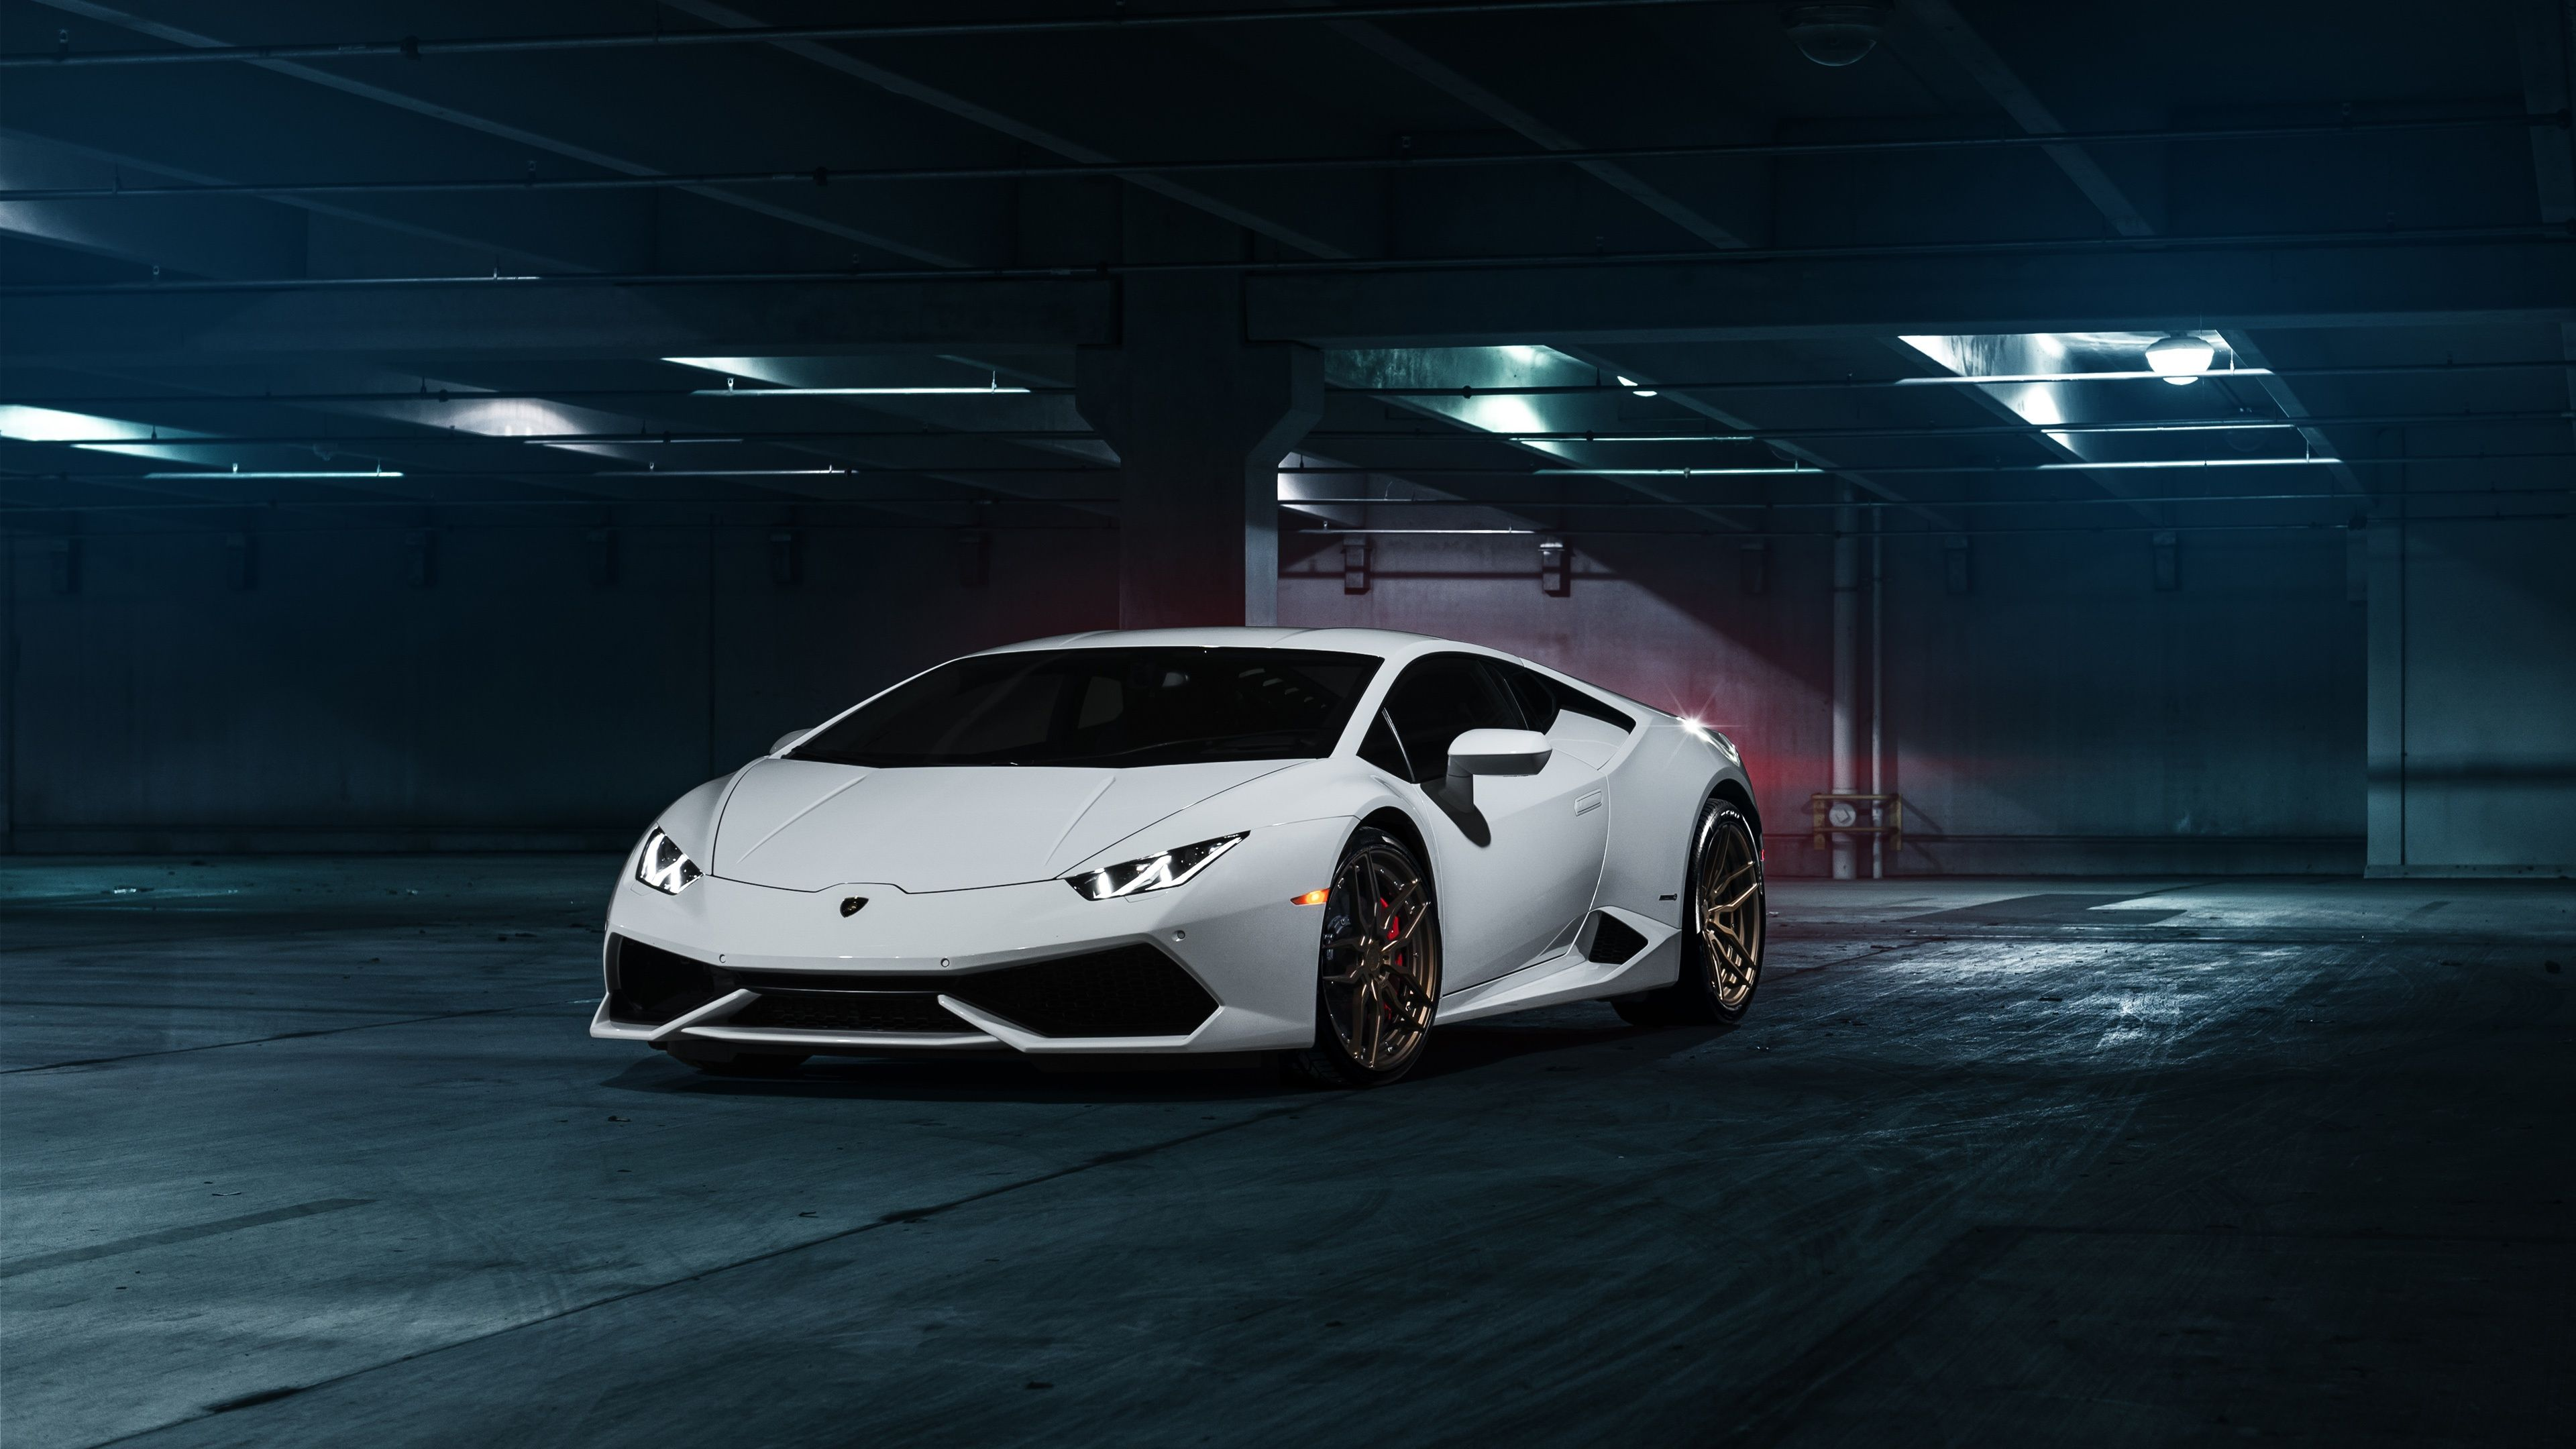 Wallpapers 4k Ultra Hd Lamborghini Superdeportivos Autos Deportivos